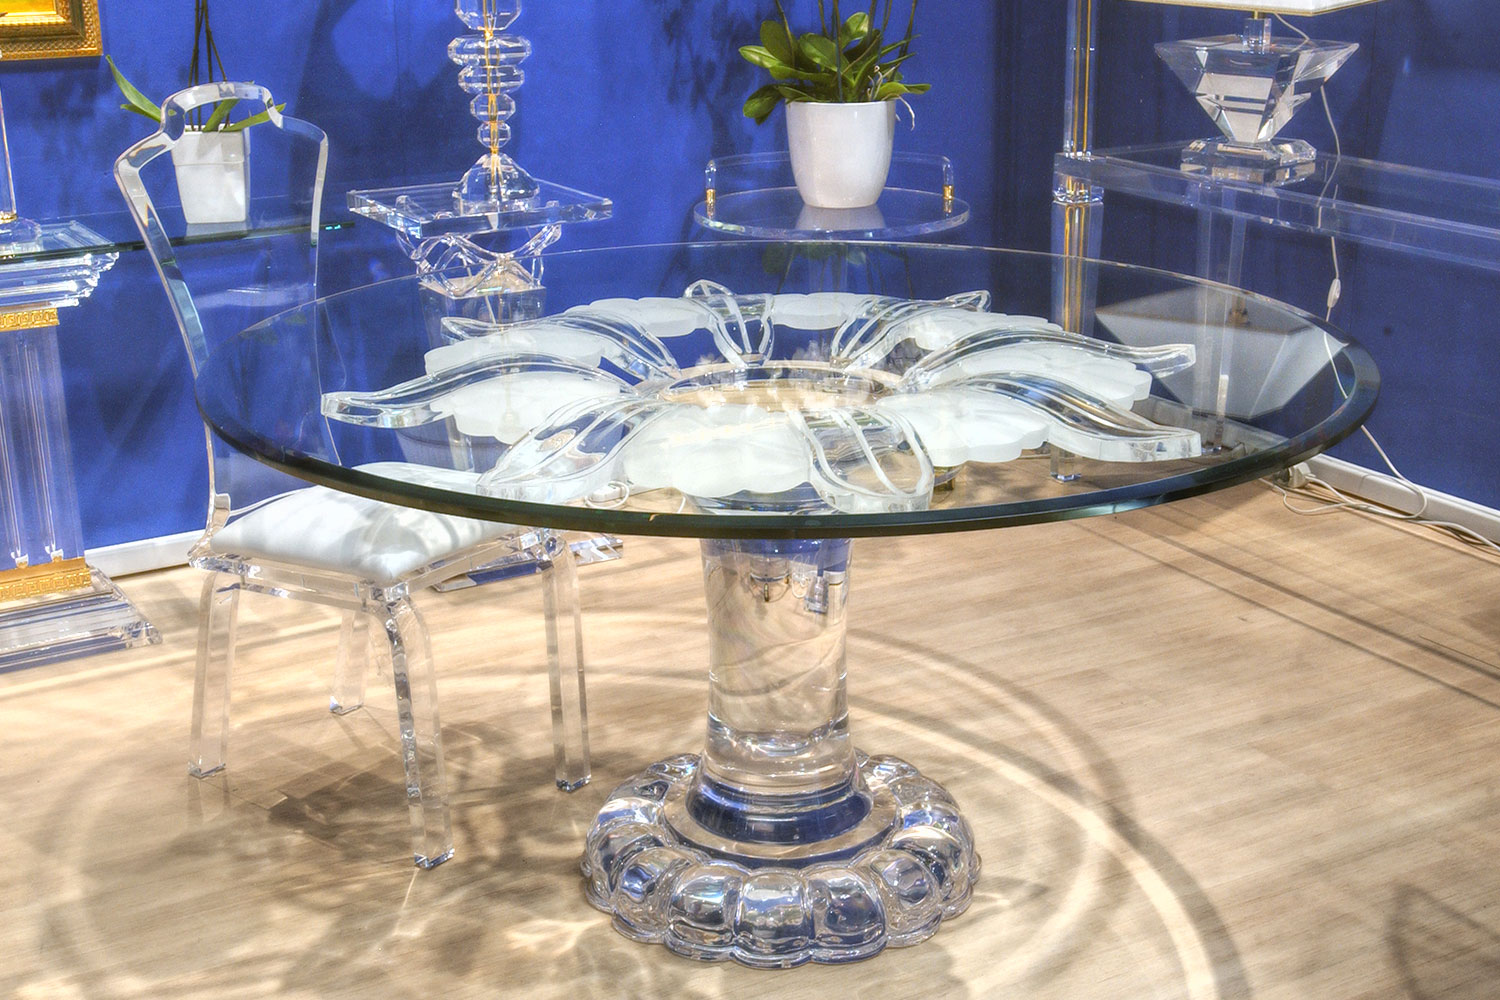 Mobilier Transparent Mobilier Transparent Meuble Transparent Table Objet Méthacrylate